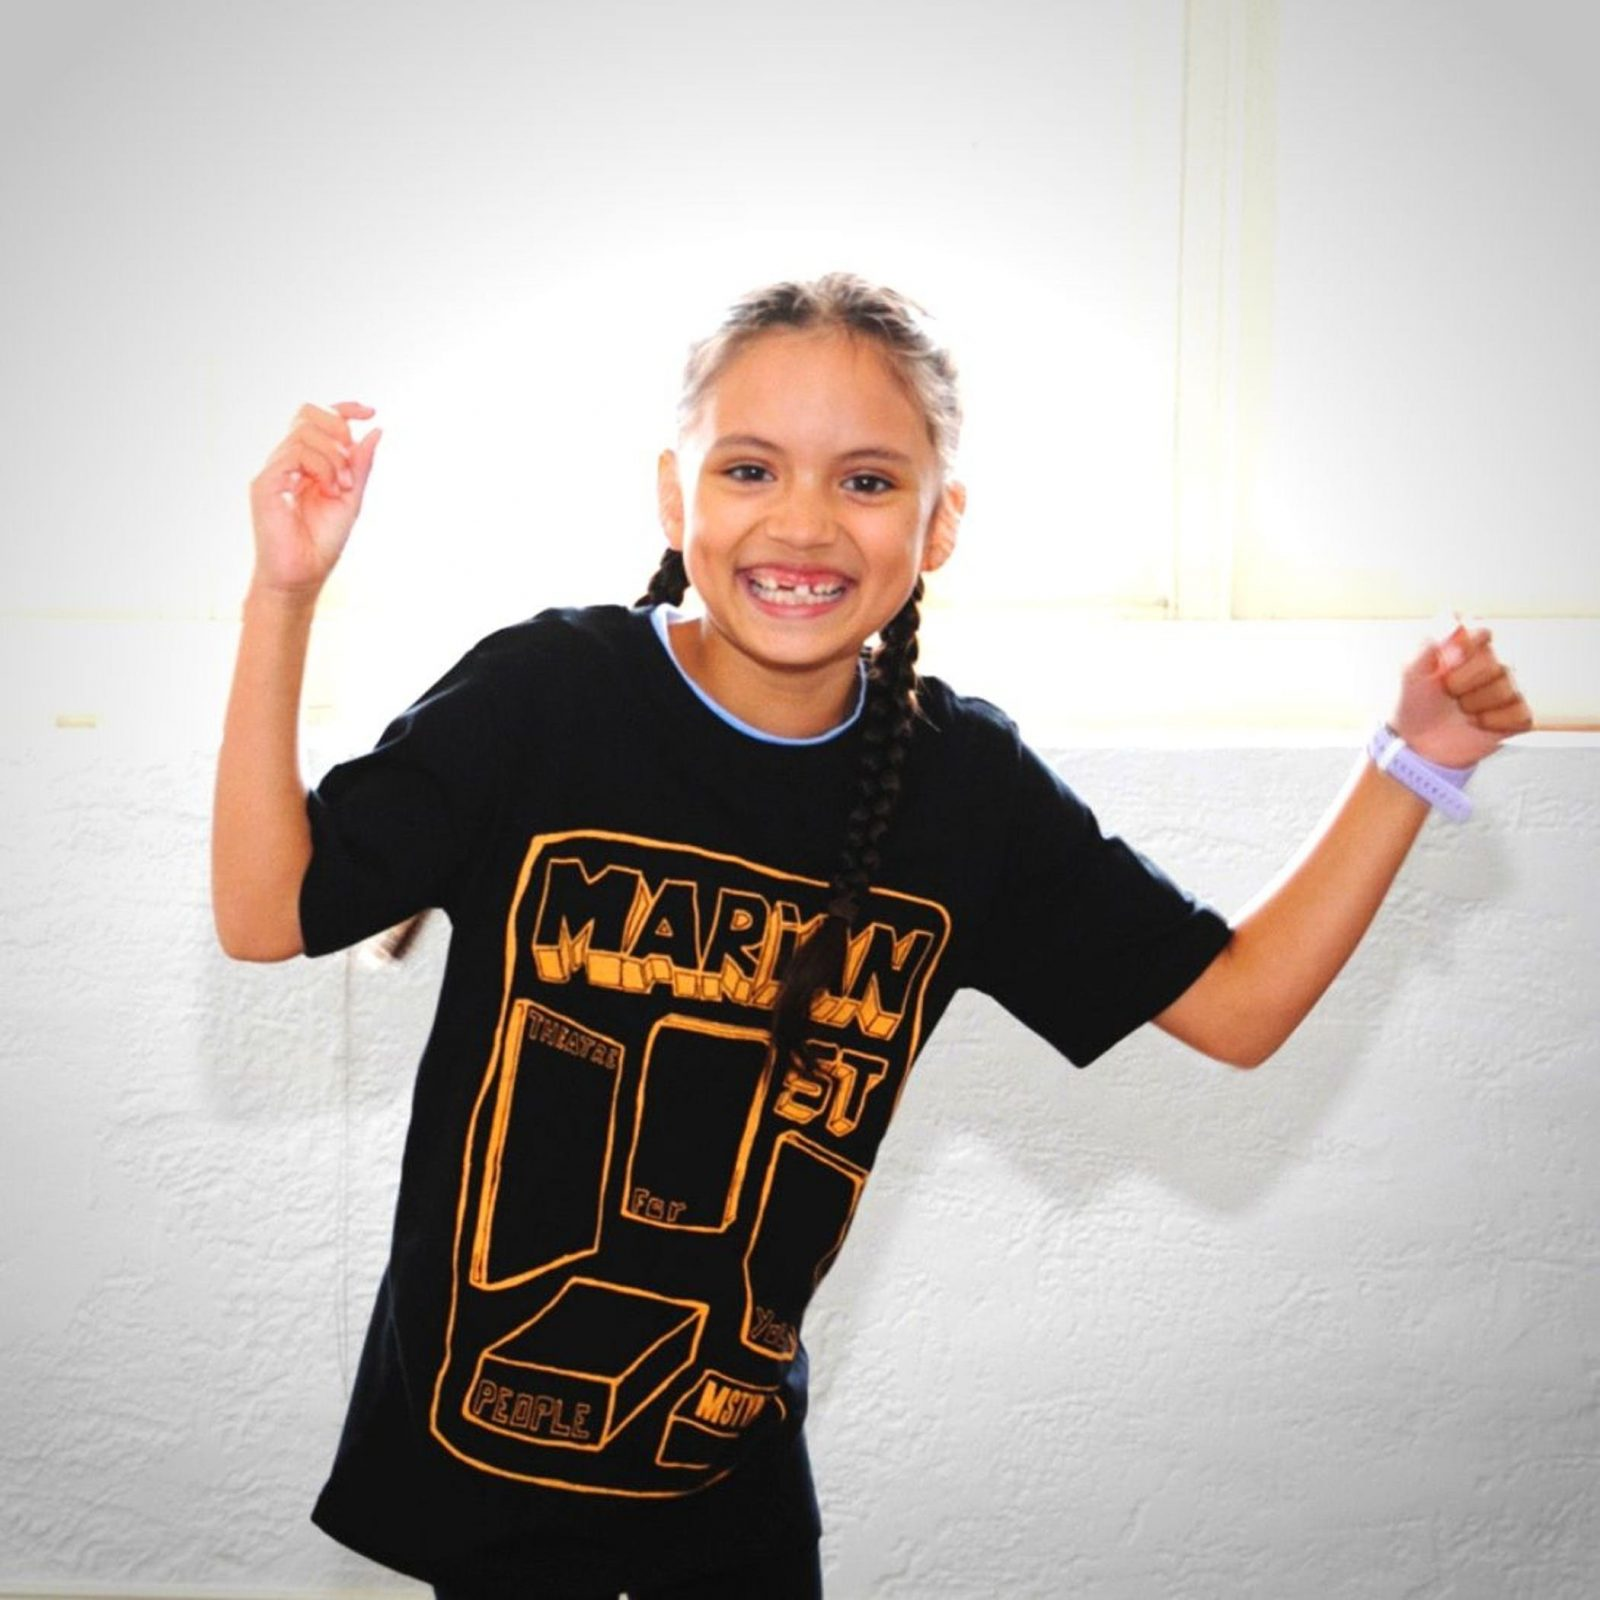 A girl grins and raises her arms like a bear. She wears a black t-shirt against a white background.